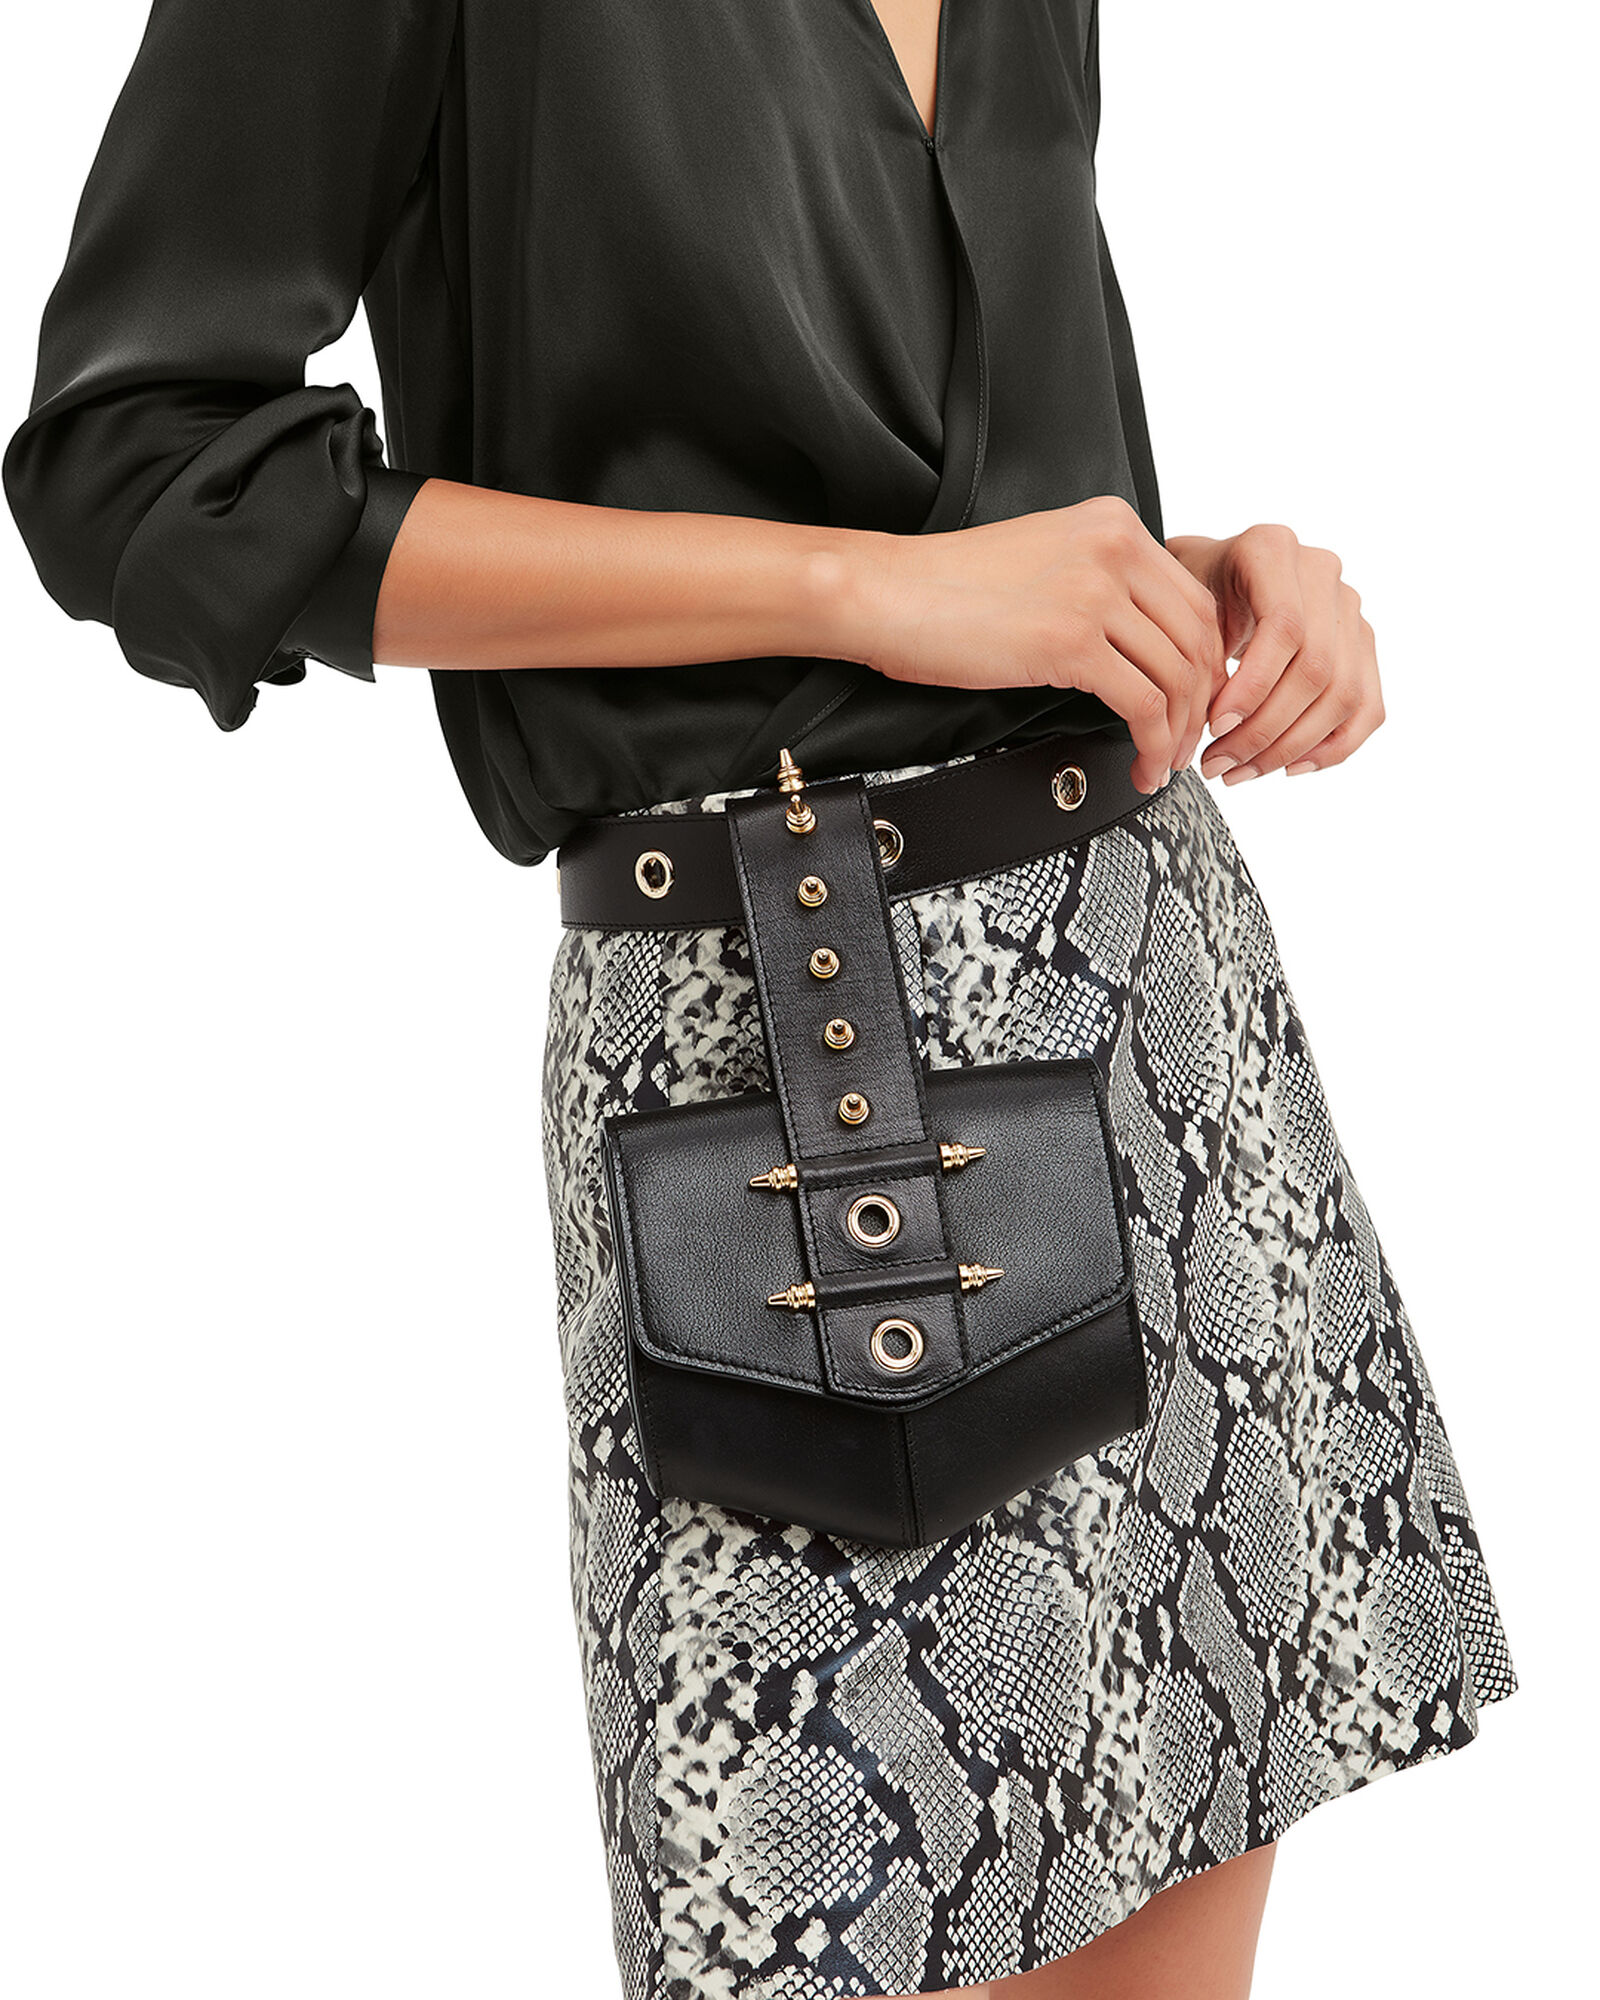 Rodhawk Leather Belt Bag, BLACK, hi-res